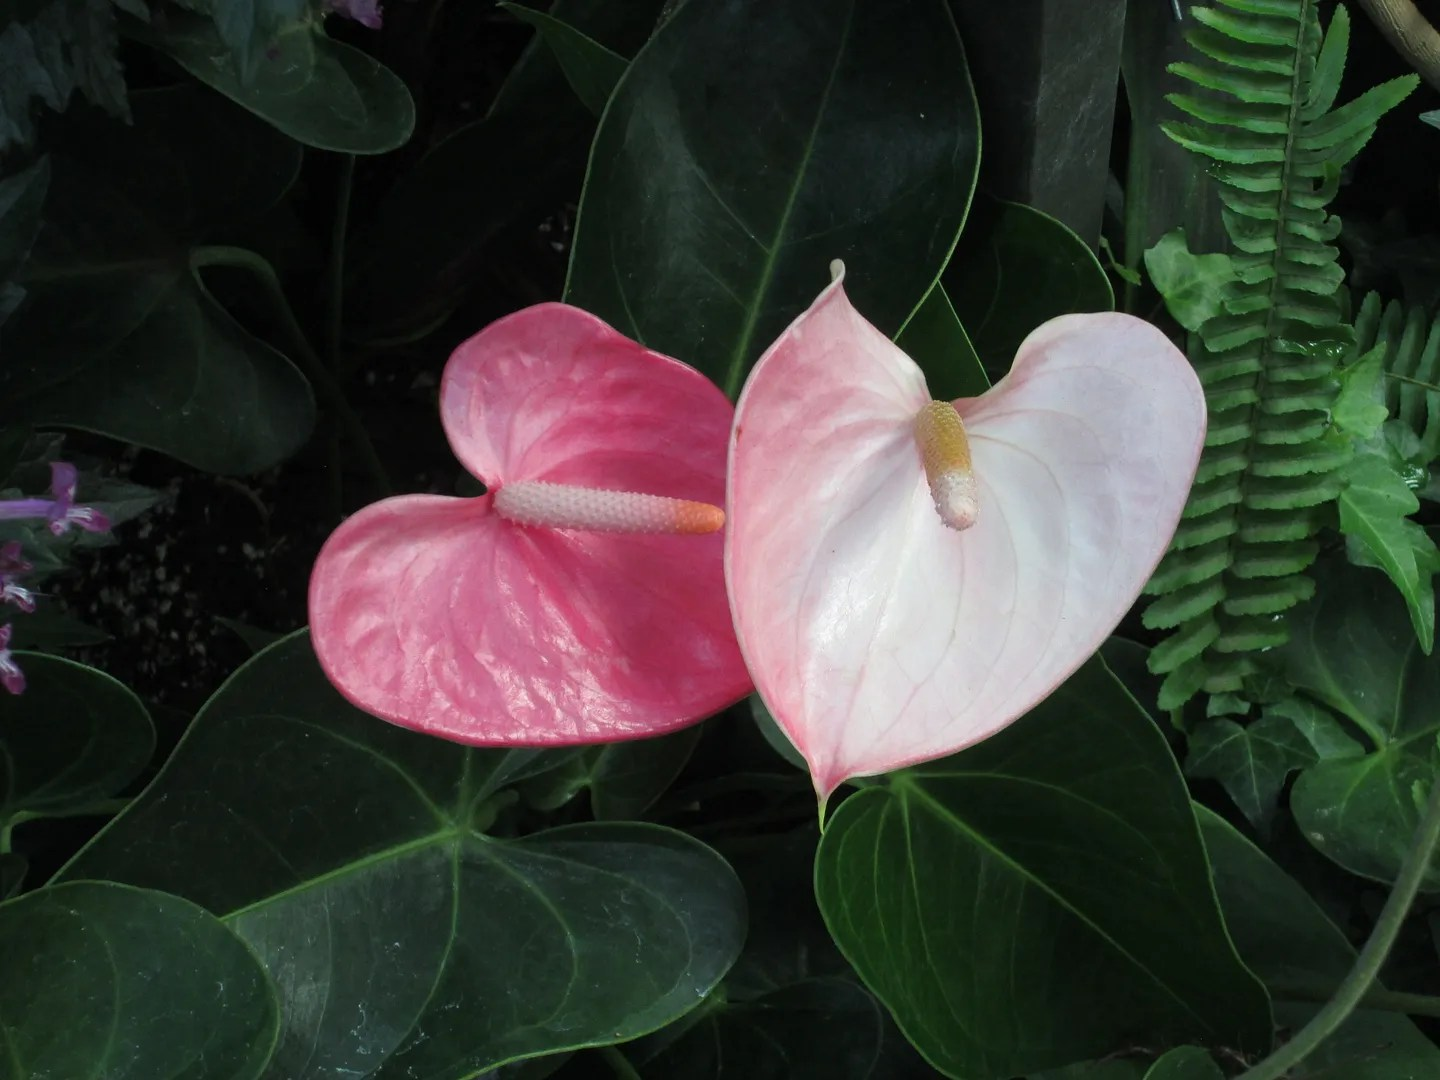 two pink heart-shaped tropical flowers, one dark pink and one light pink